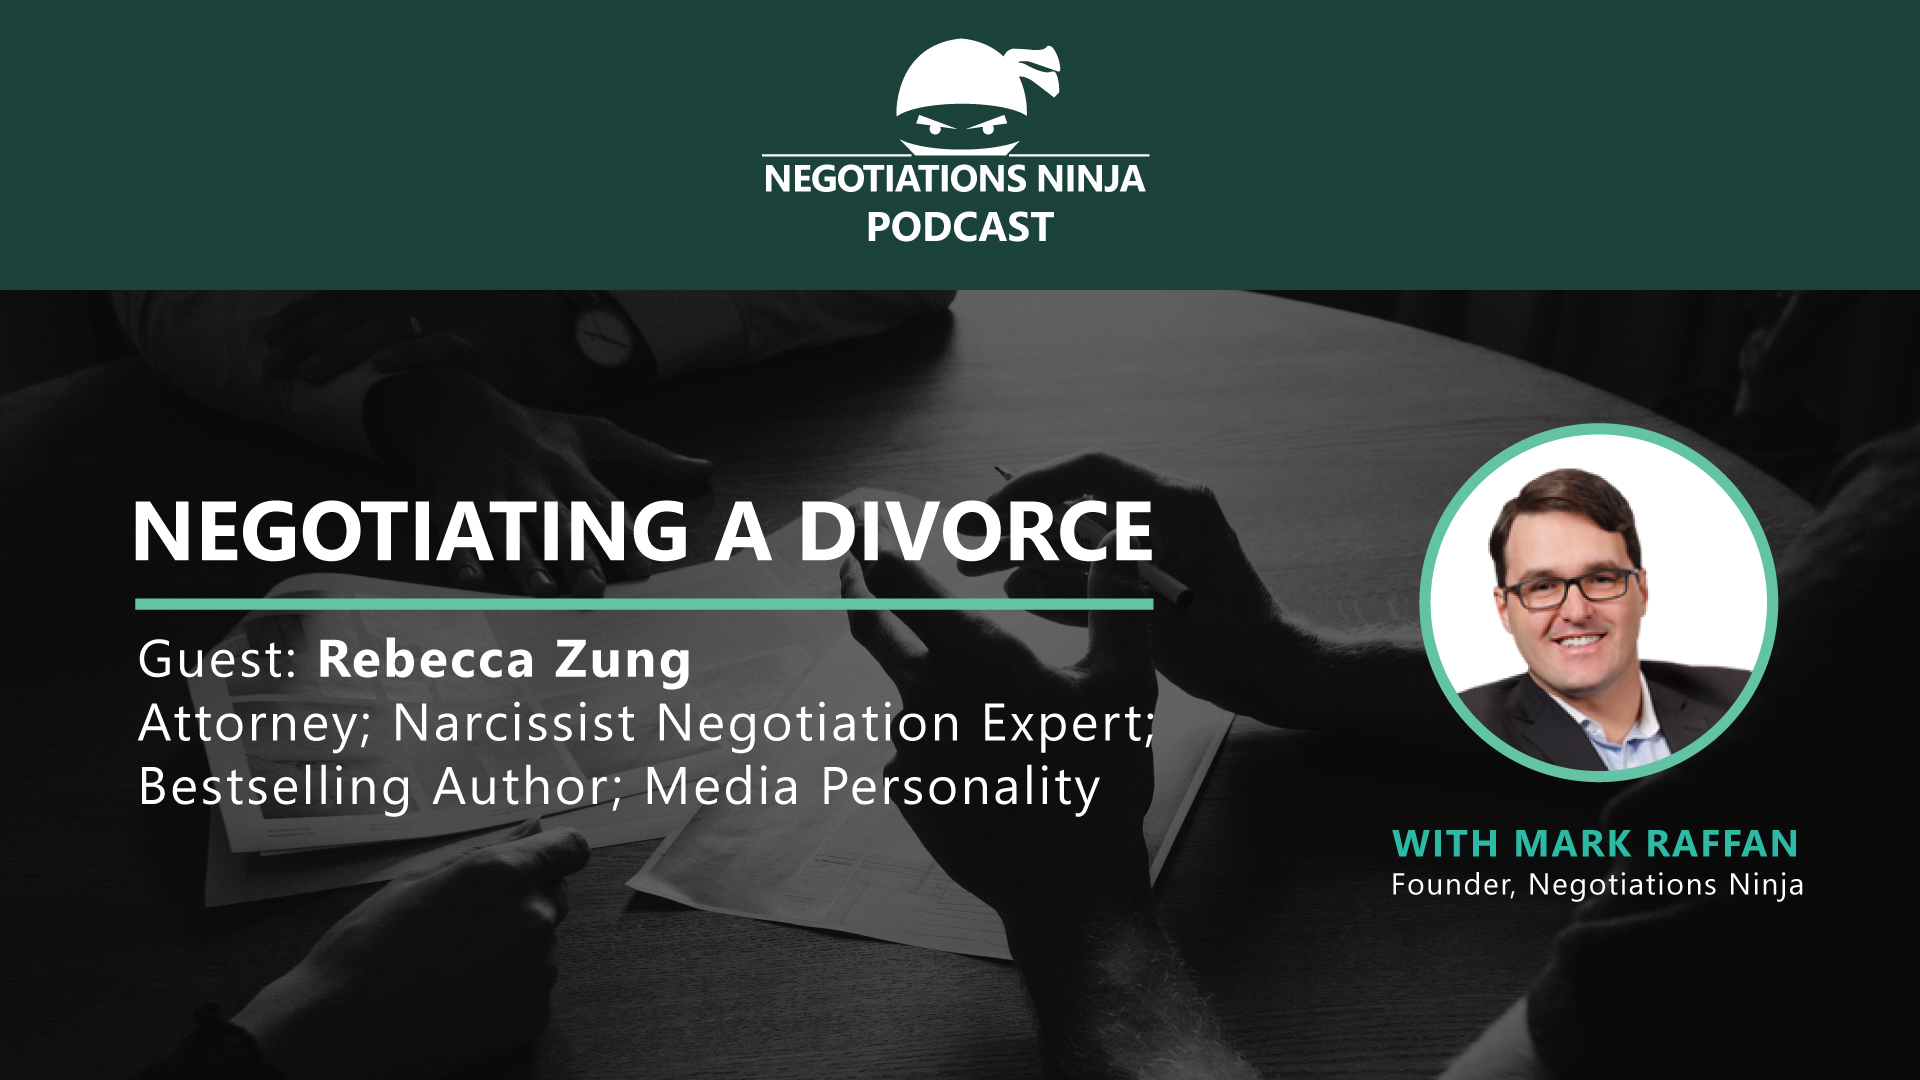 Negotiating a Divorce with Rebecca Zung